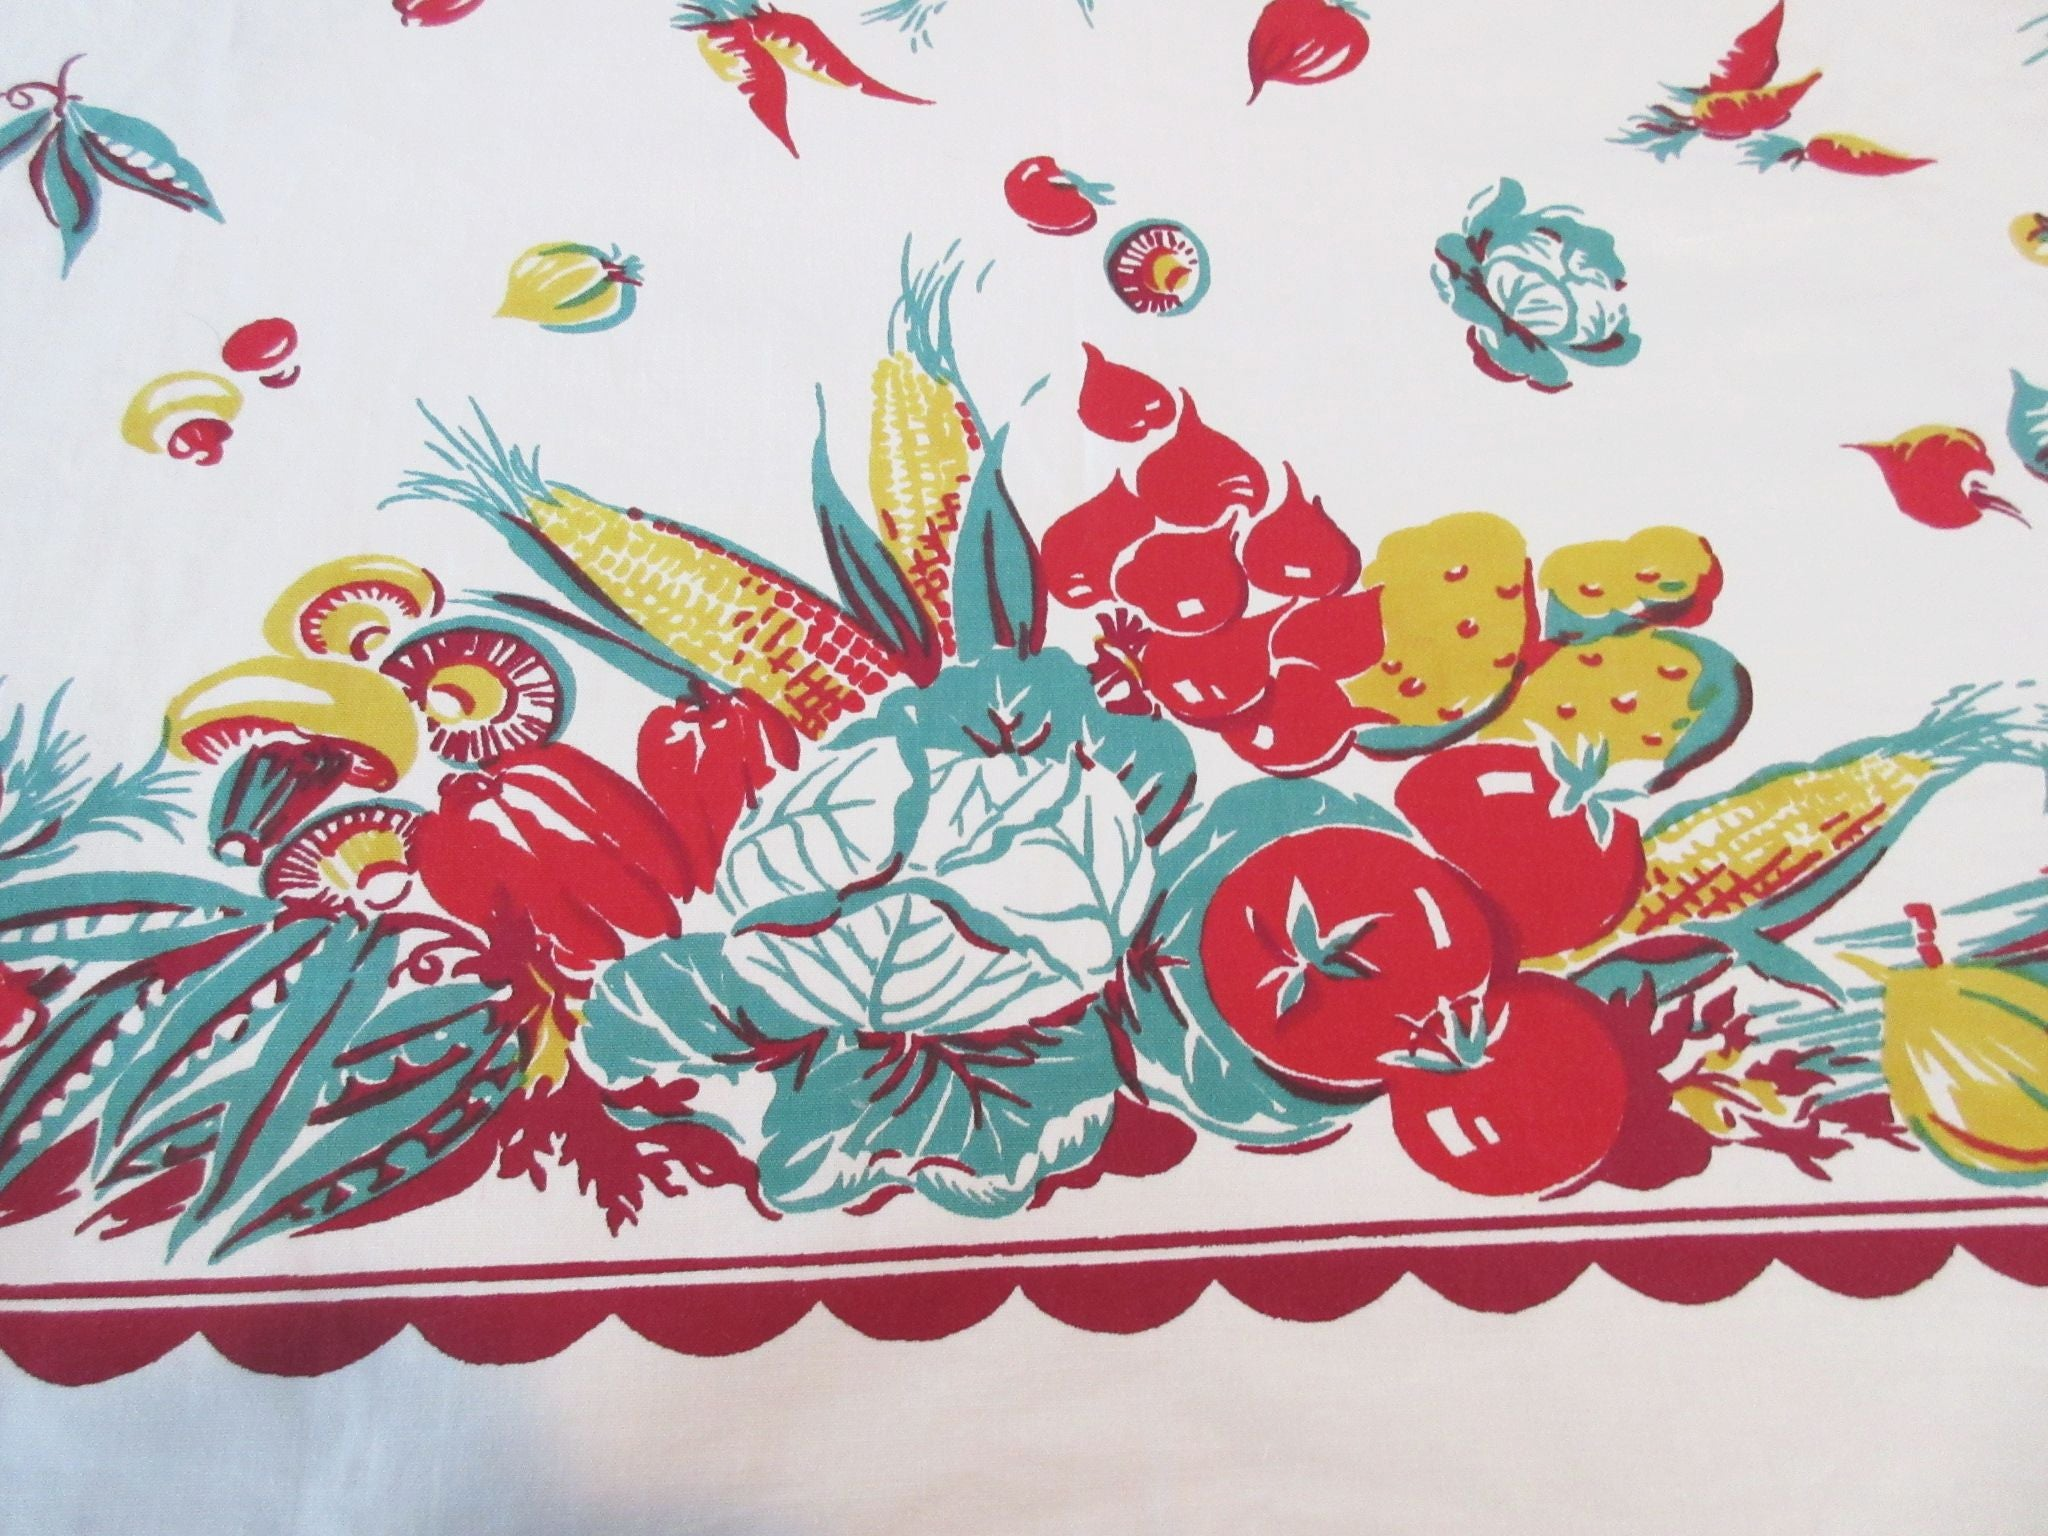 Victory Garden Veggies Vegetables Vintage Printed Tablecloth (52 X 46)